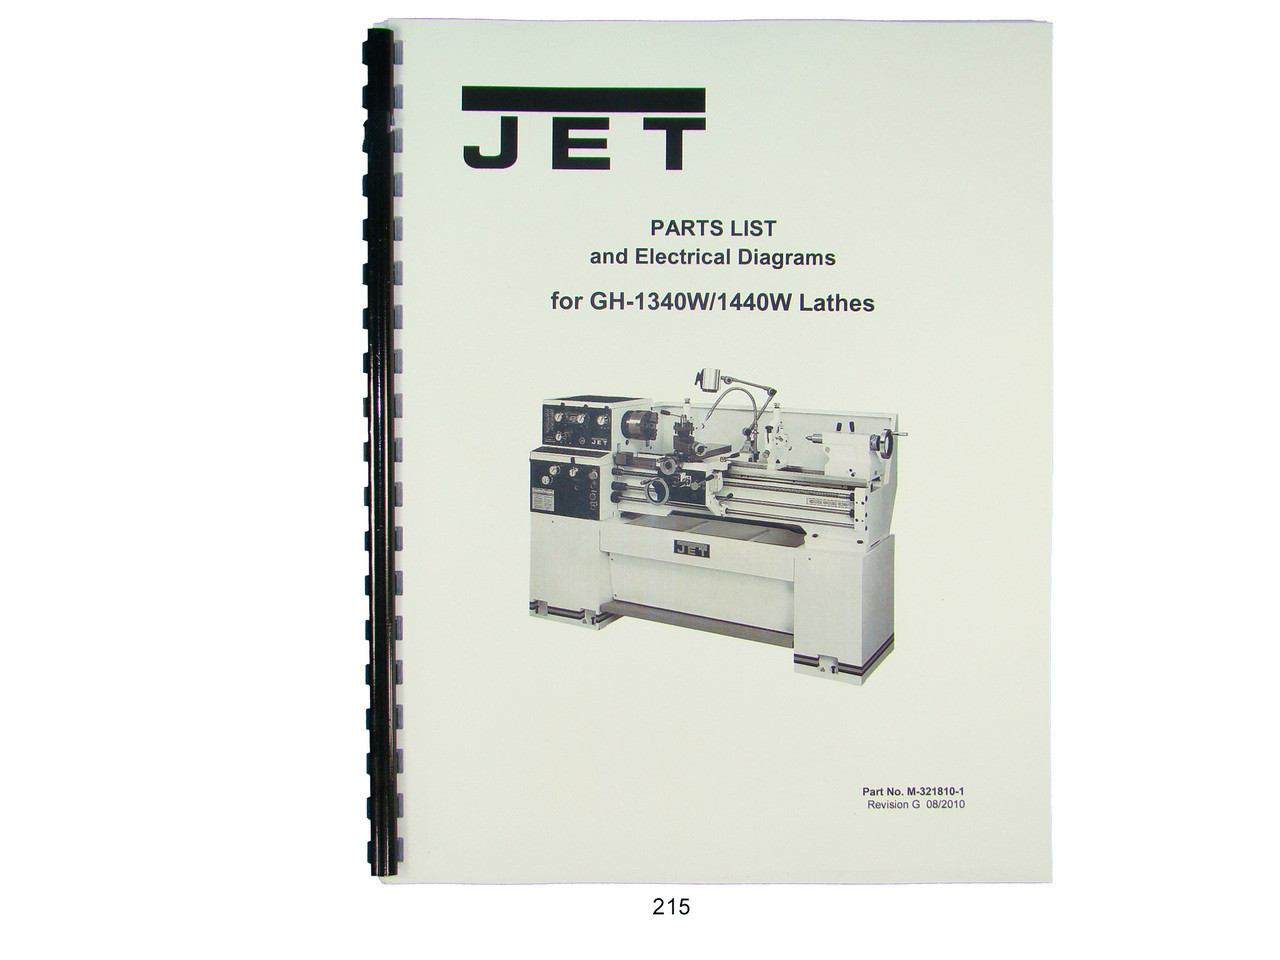 Jet Metal Lathe Wiring Diagram Trusted Diagrams Gh 1340w 1440w Parts List Electrical Manual Cnc